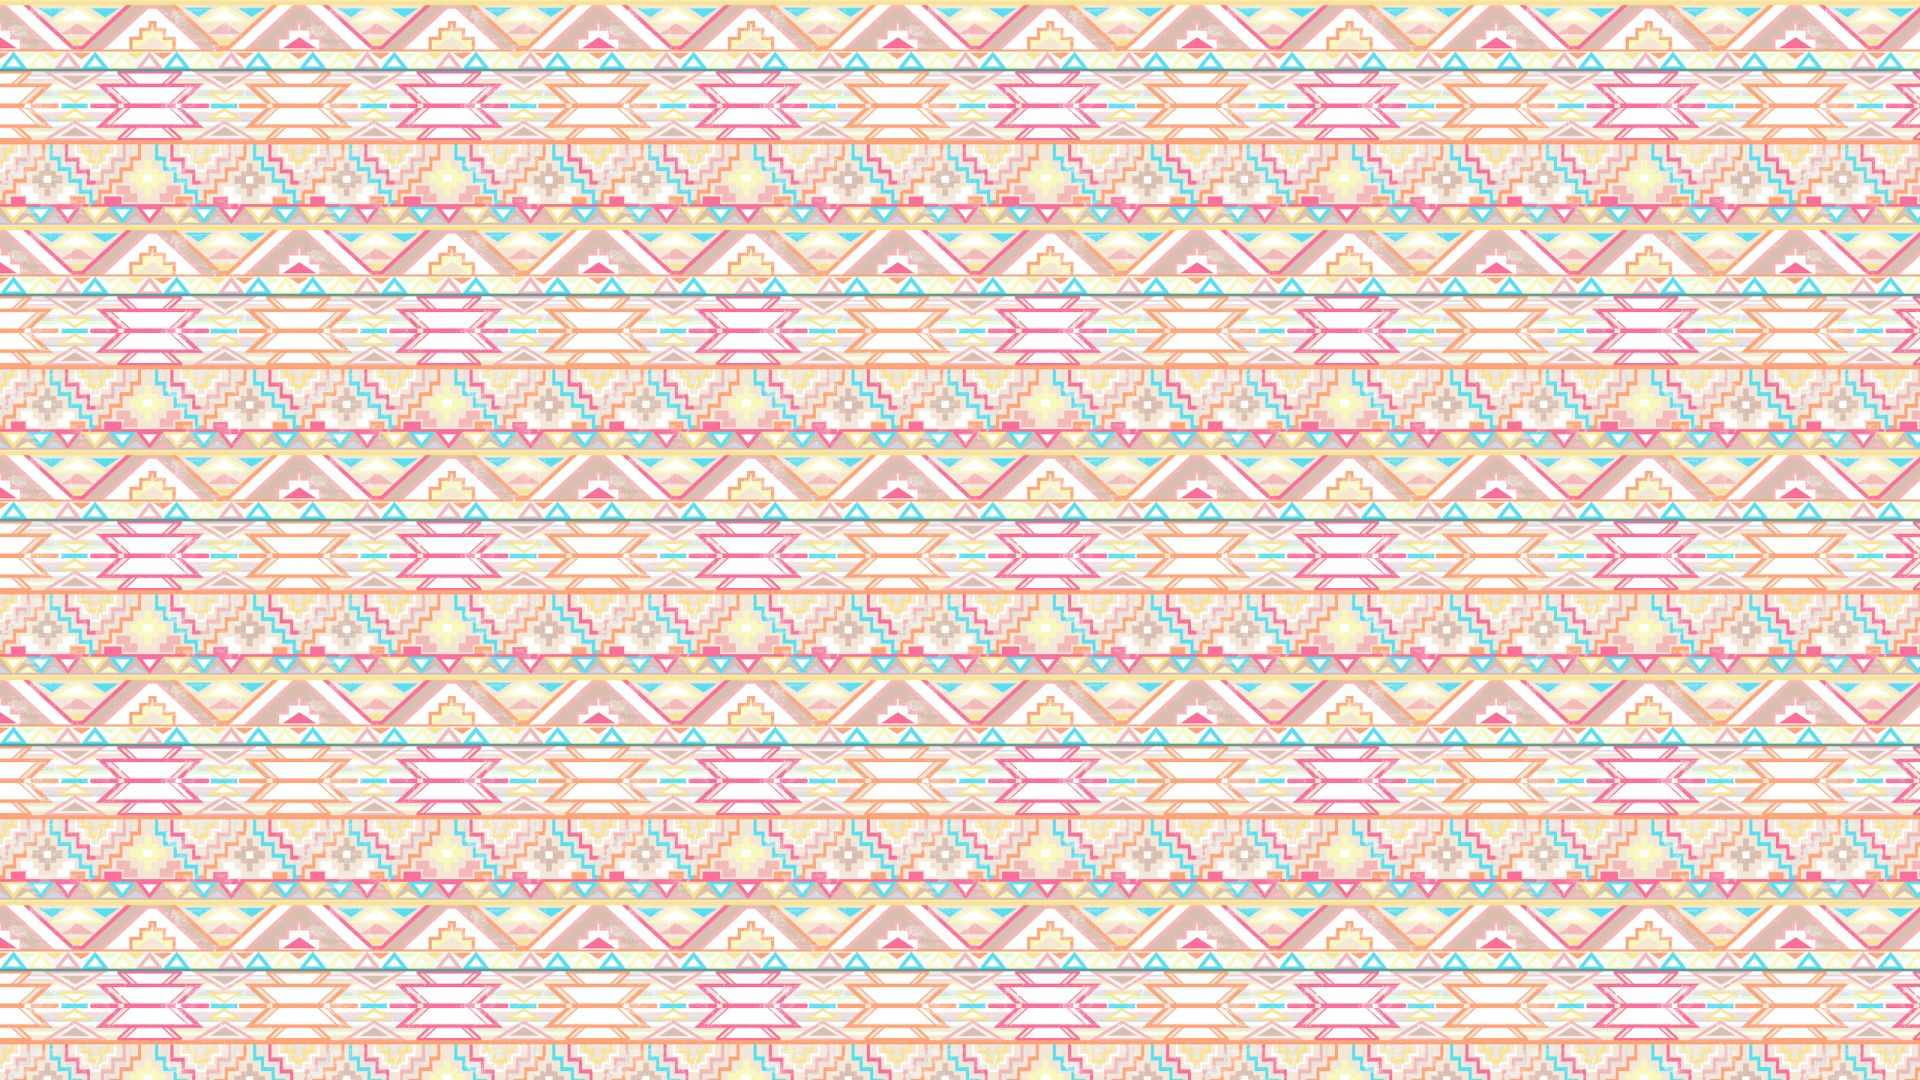 Holographic Wallpaper Image